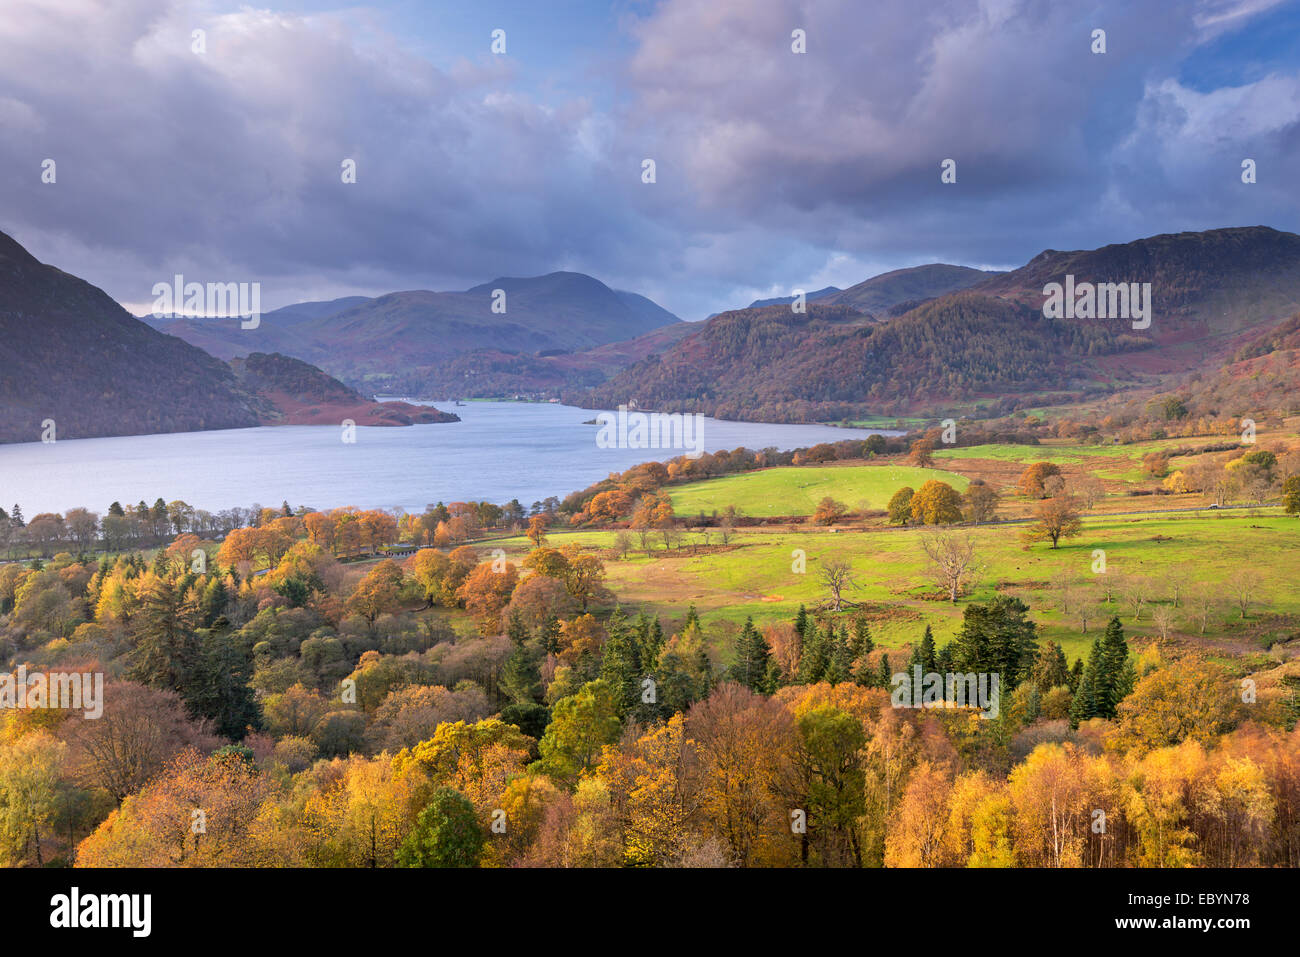 Ullswater from Gowbarrow Fell, Lake District, Cumbria, England. Autumn (November) 2014. - Stock Image